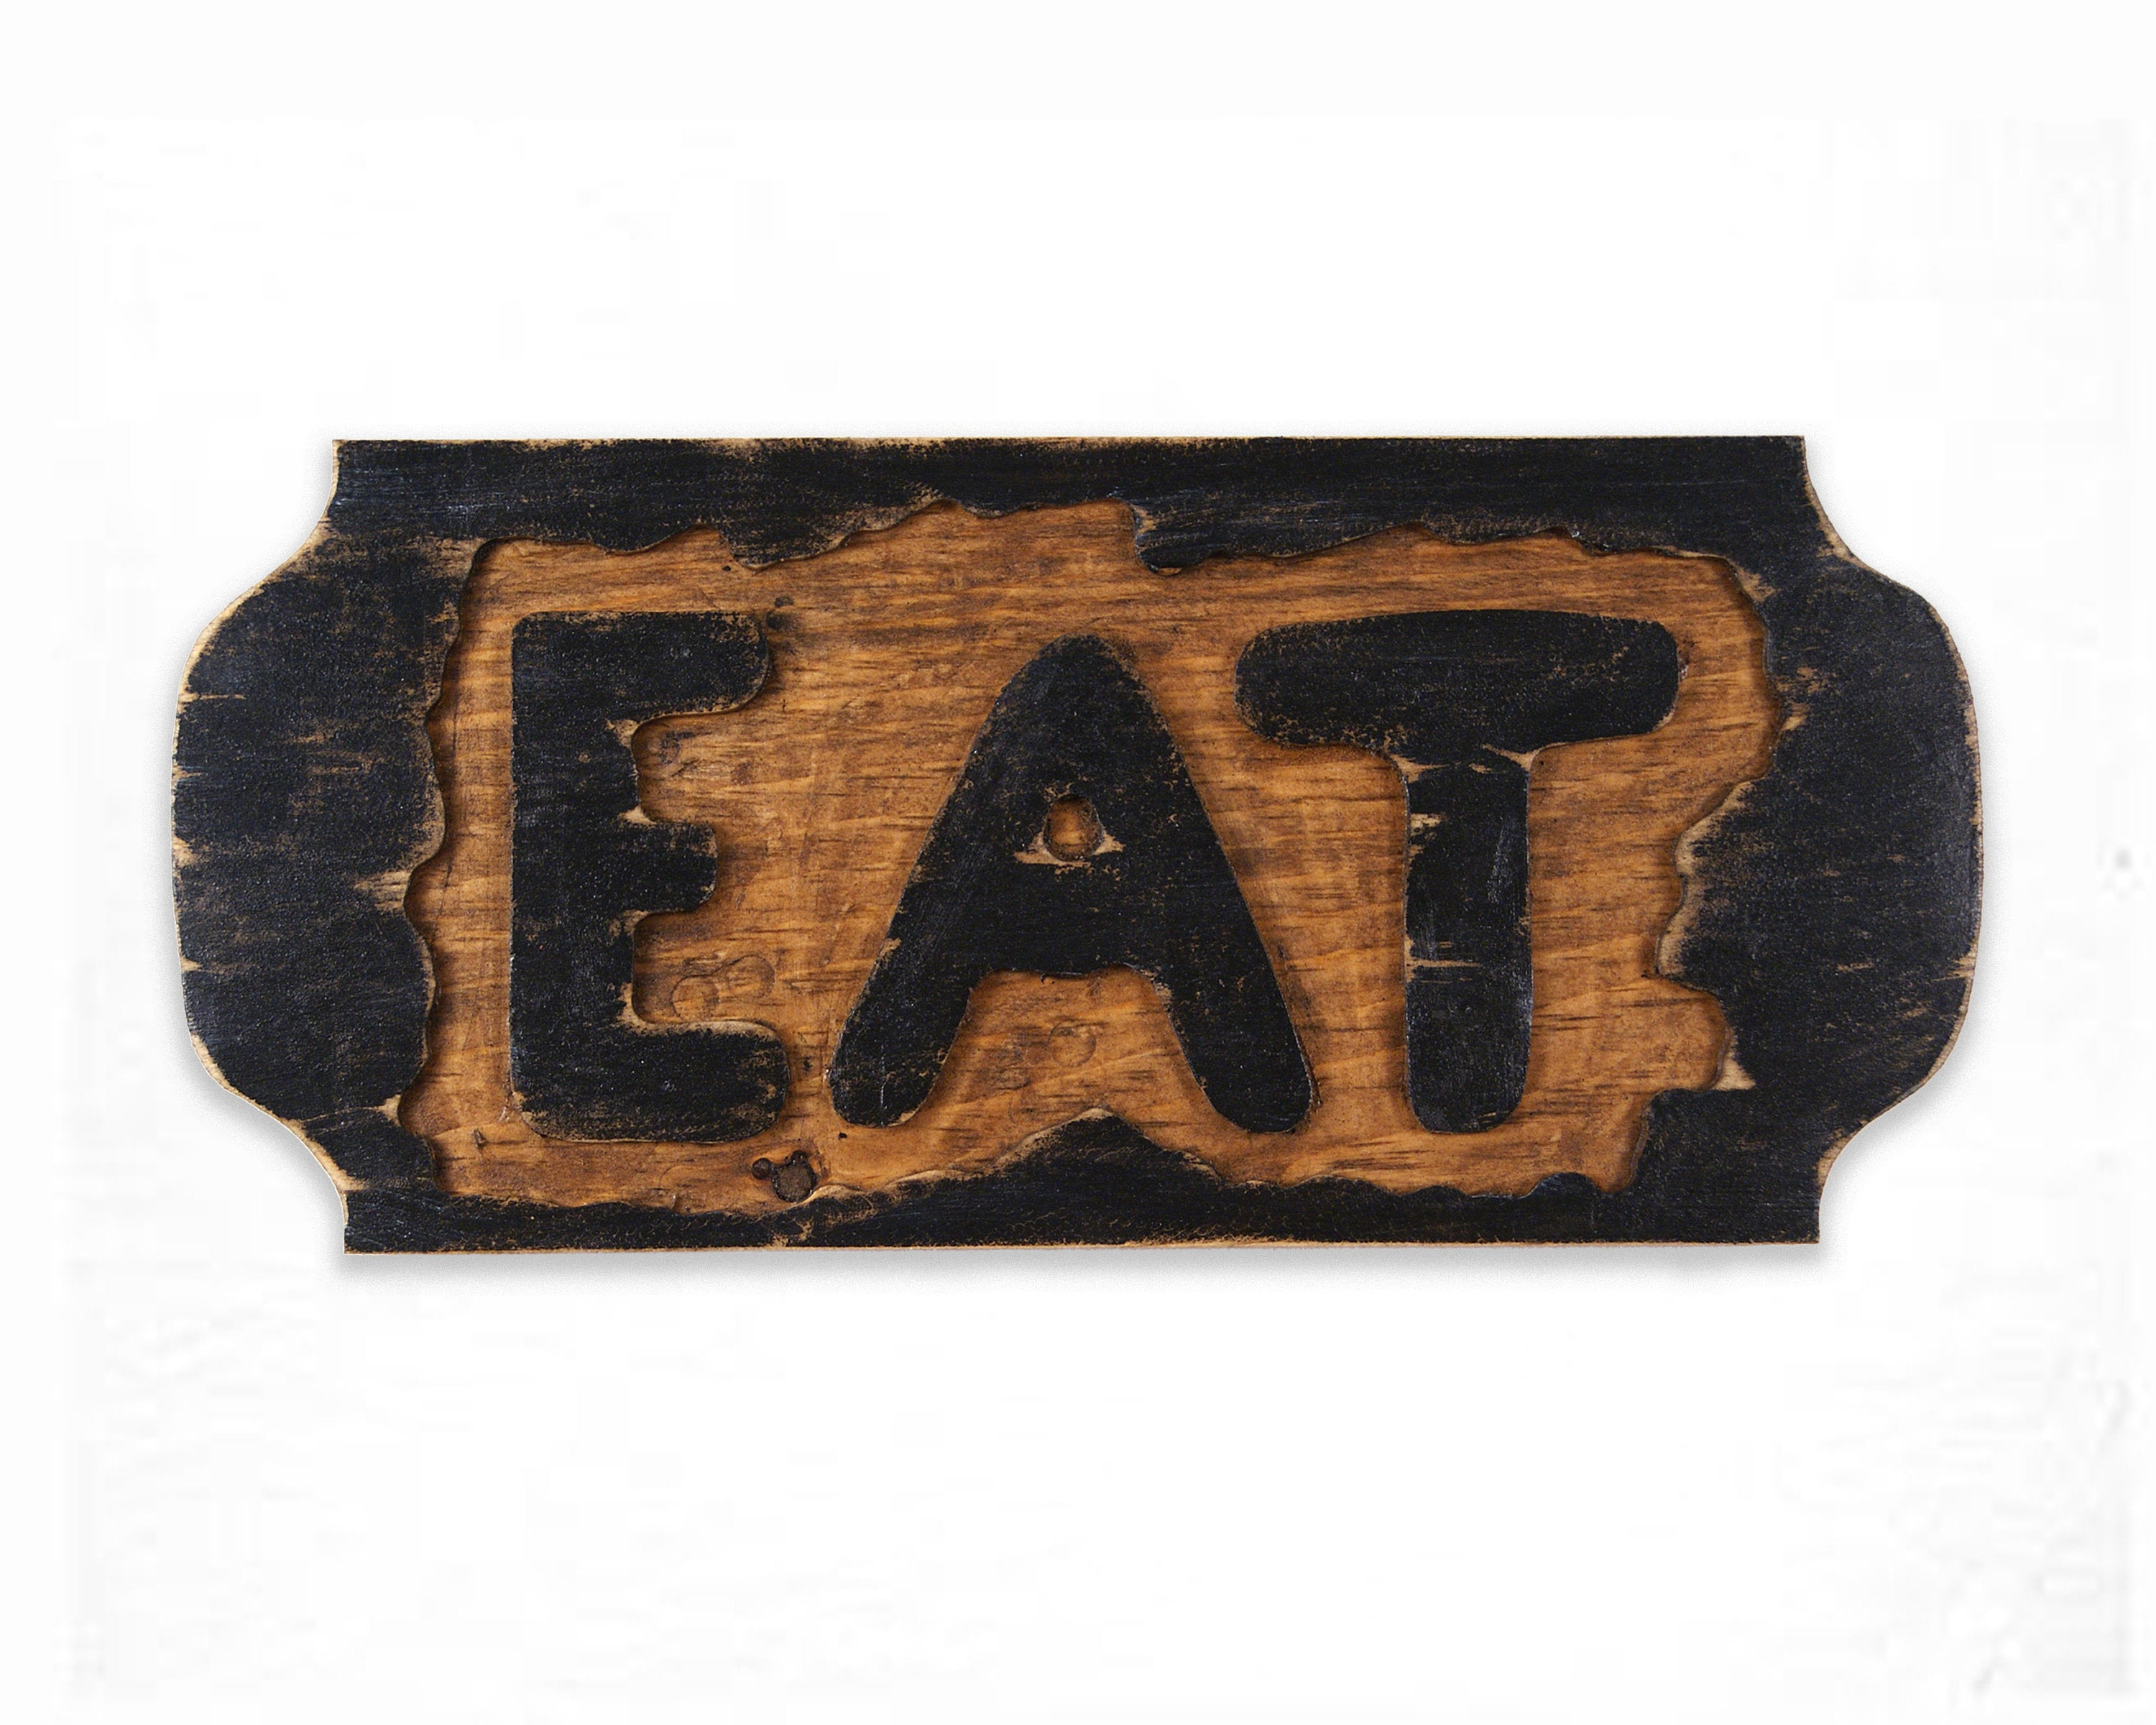 Eat Sign, Reclaimed Wood Wall Hanging, Rustic Wall Hanging Within Eat Rustic Farmhouse Wood Wall Decor (Photo 20 of 30)